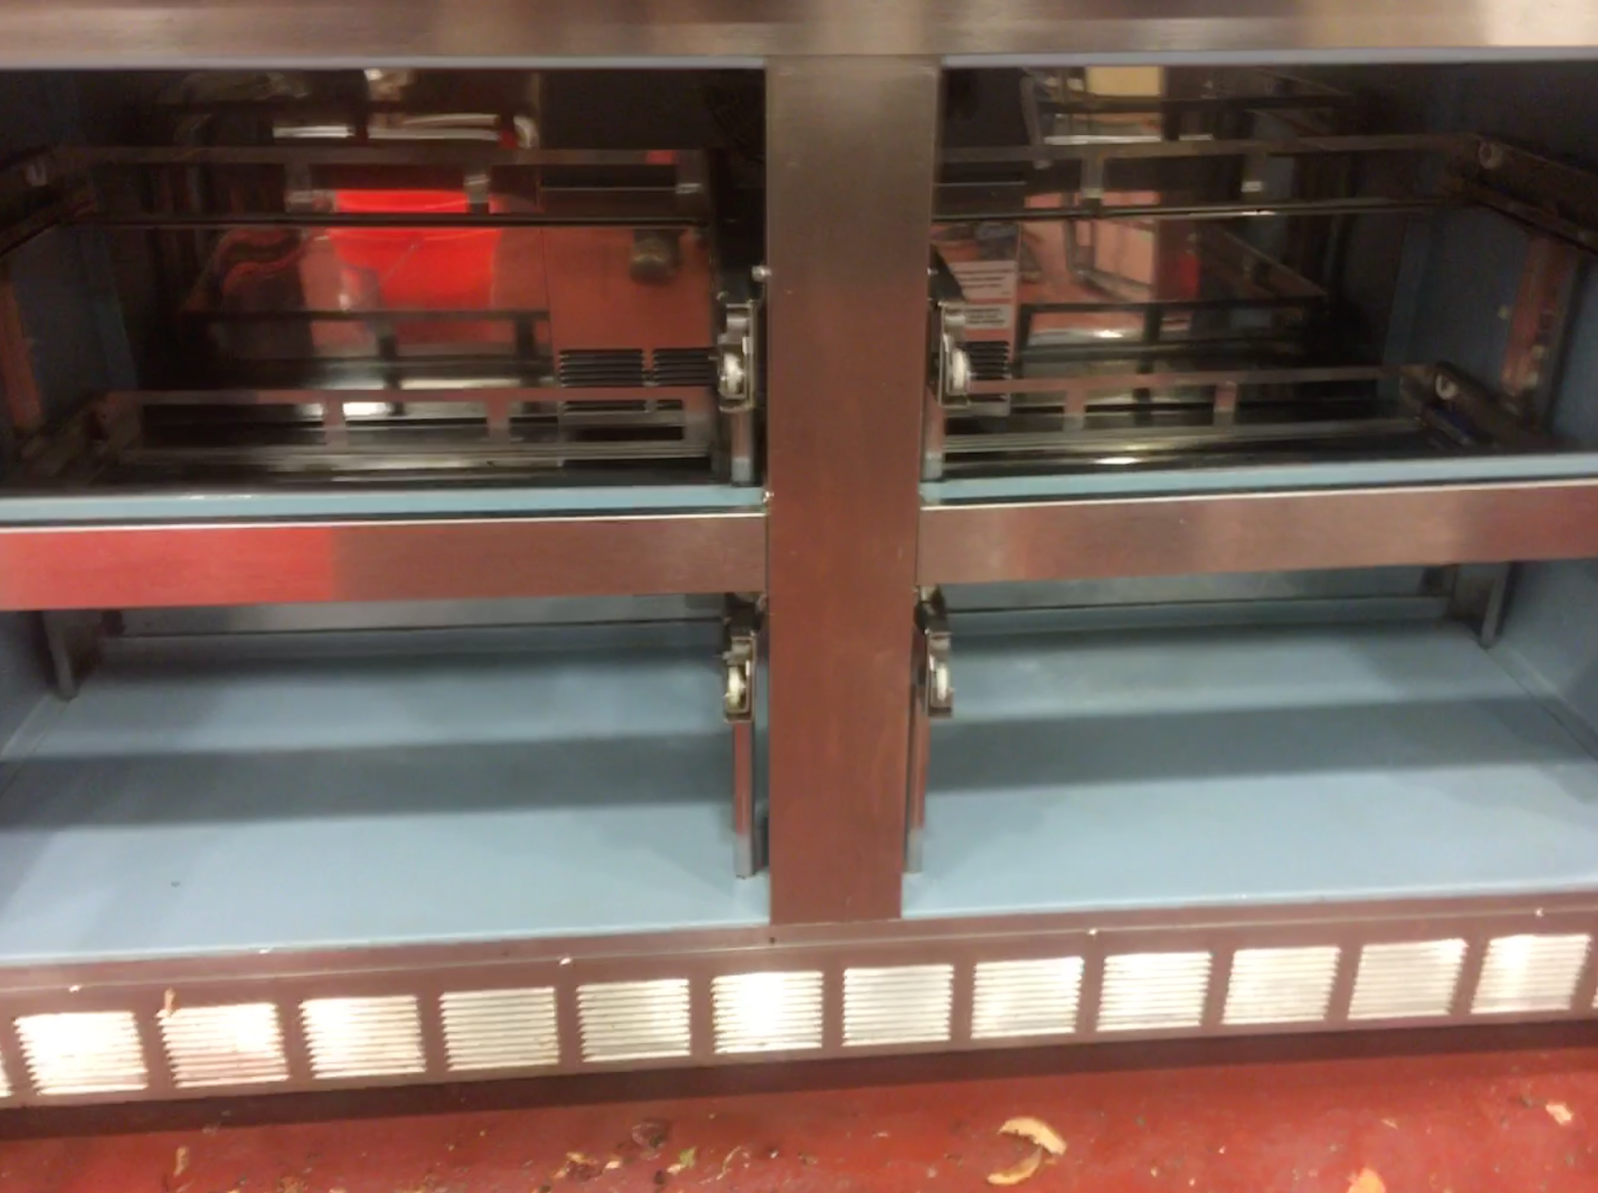 Commercial Kitchen Equipment Cleaning Chicago After